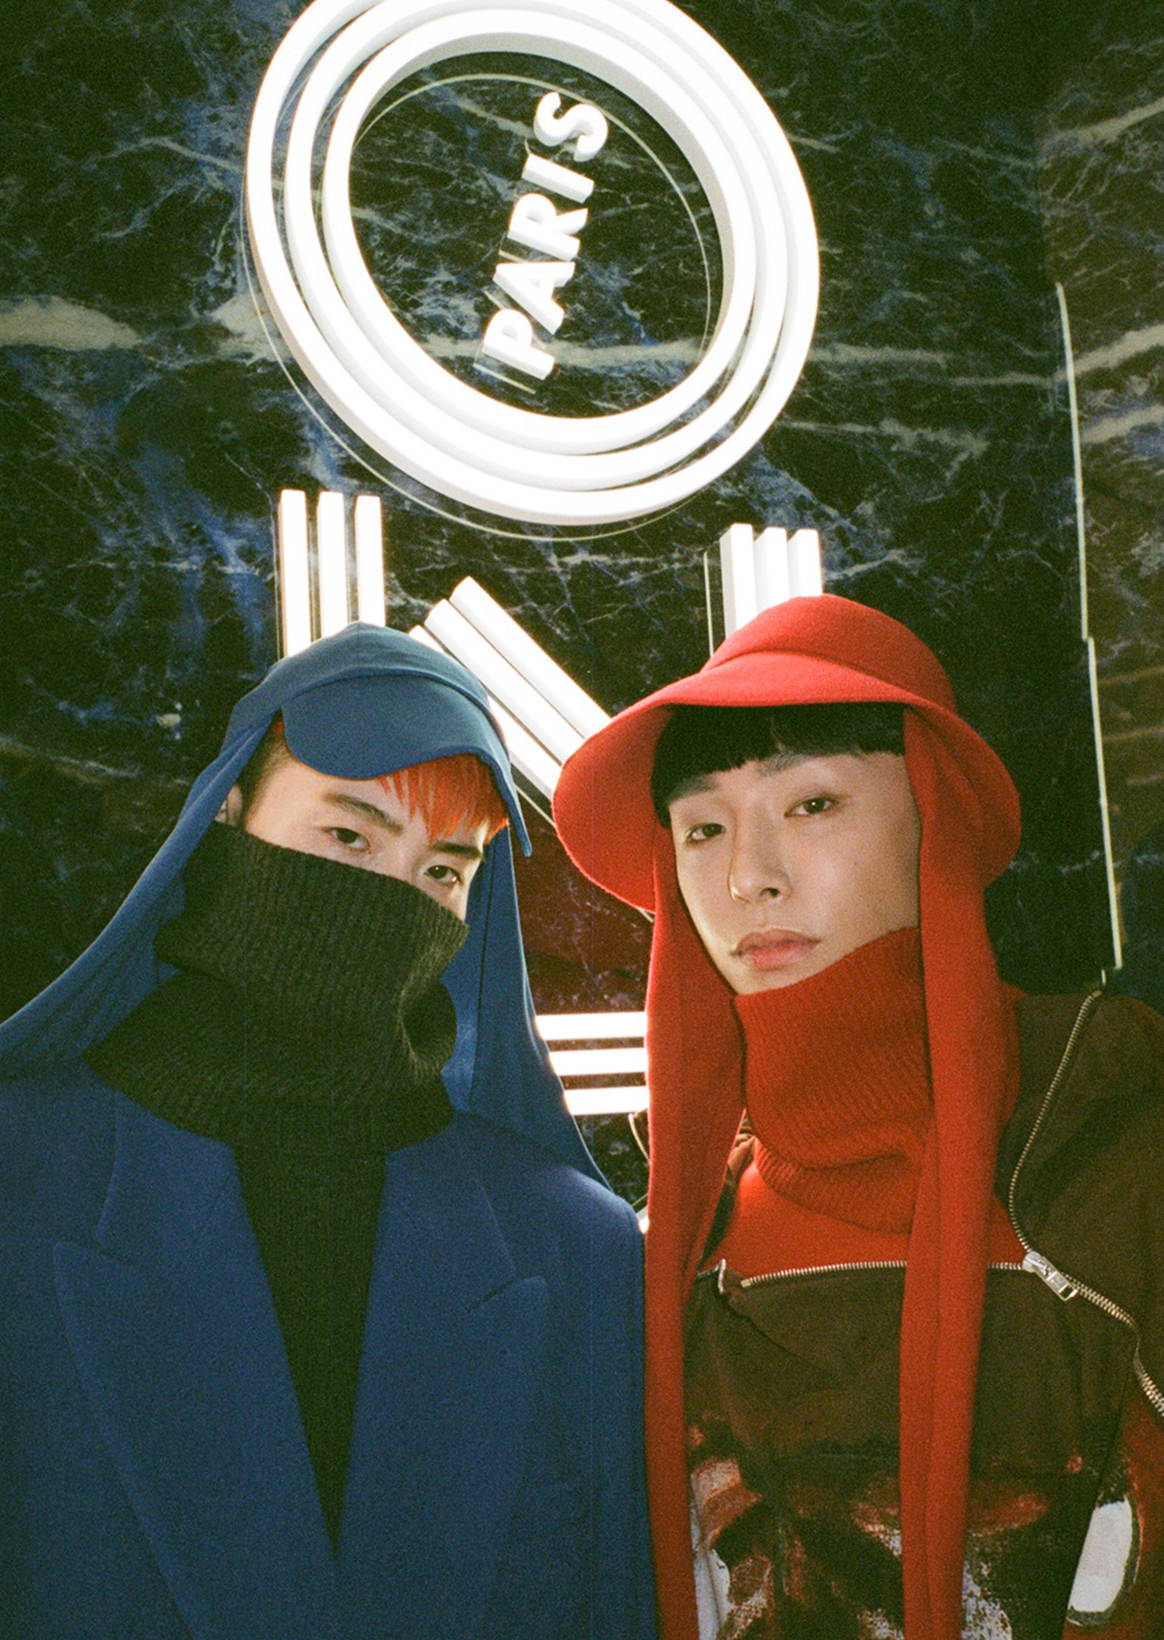 TAIKI&NOAH X KENZO/AMBUSH®WORKSHOP 2 | For fashion week feeling to Shibuya PARCO